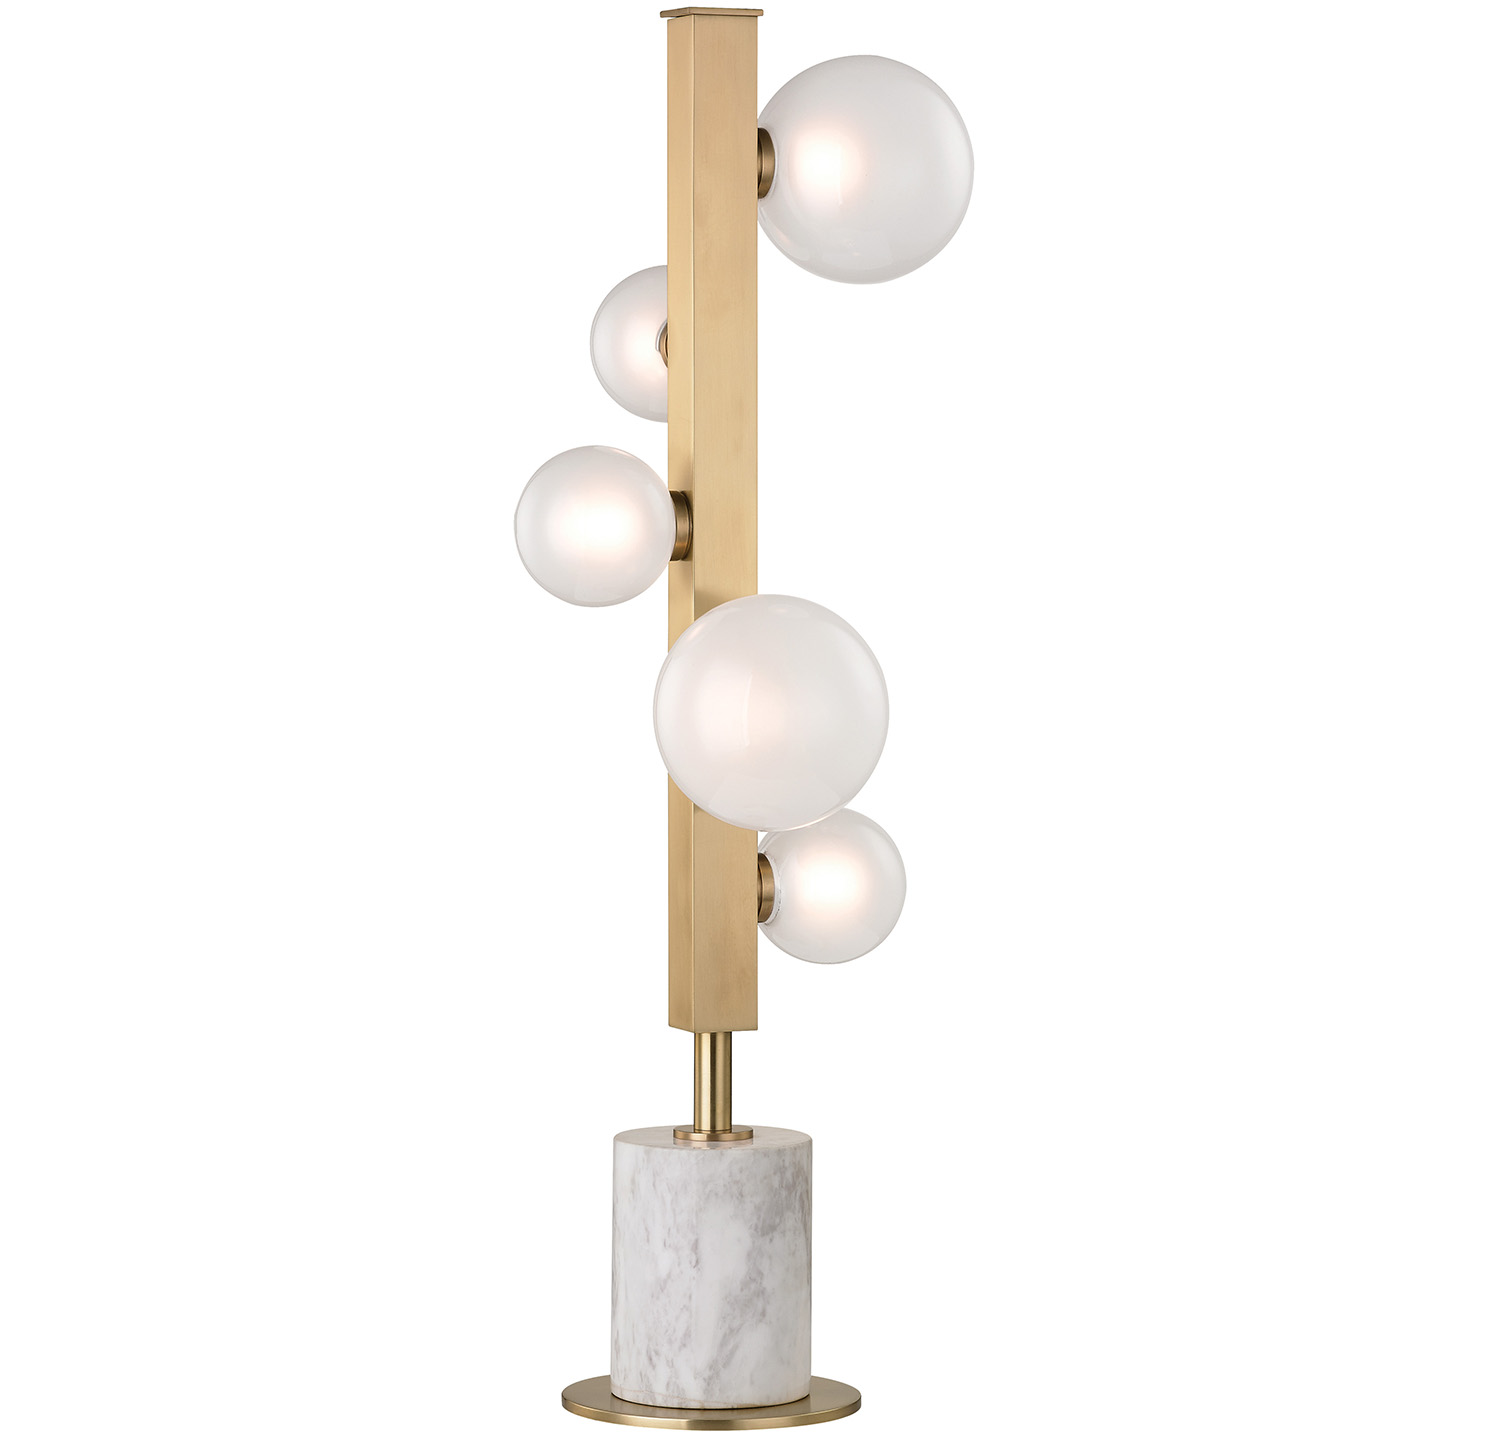 Hudson Valley Lighting launched the Mini-Hinsdale, a more compact variation of the larger Hinsdale fixture.